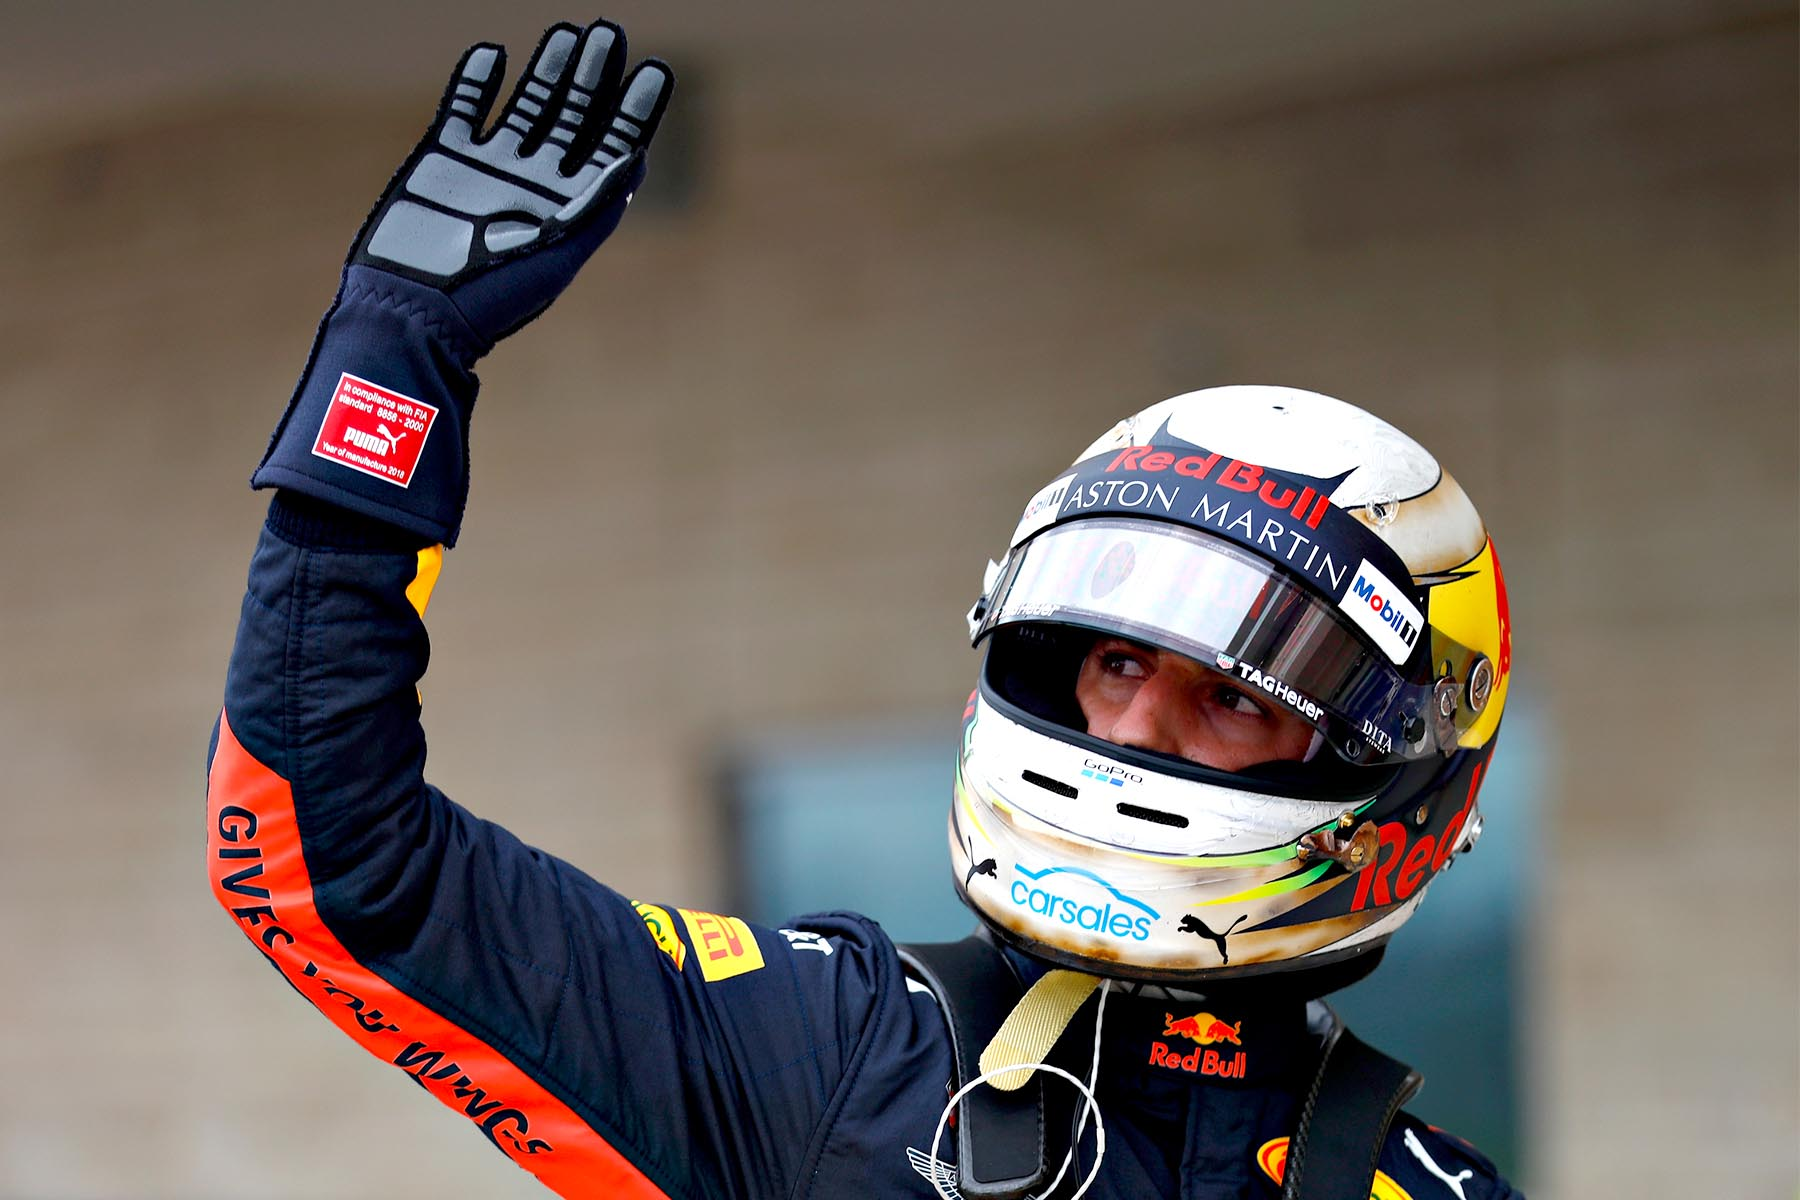 Daniel Ricciardo post-qualifying at the 2018 United States Grand Prix.